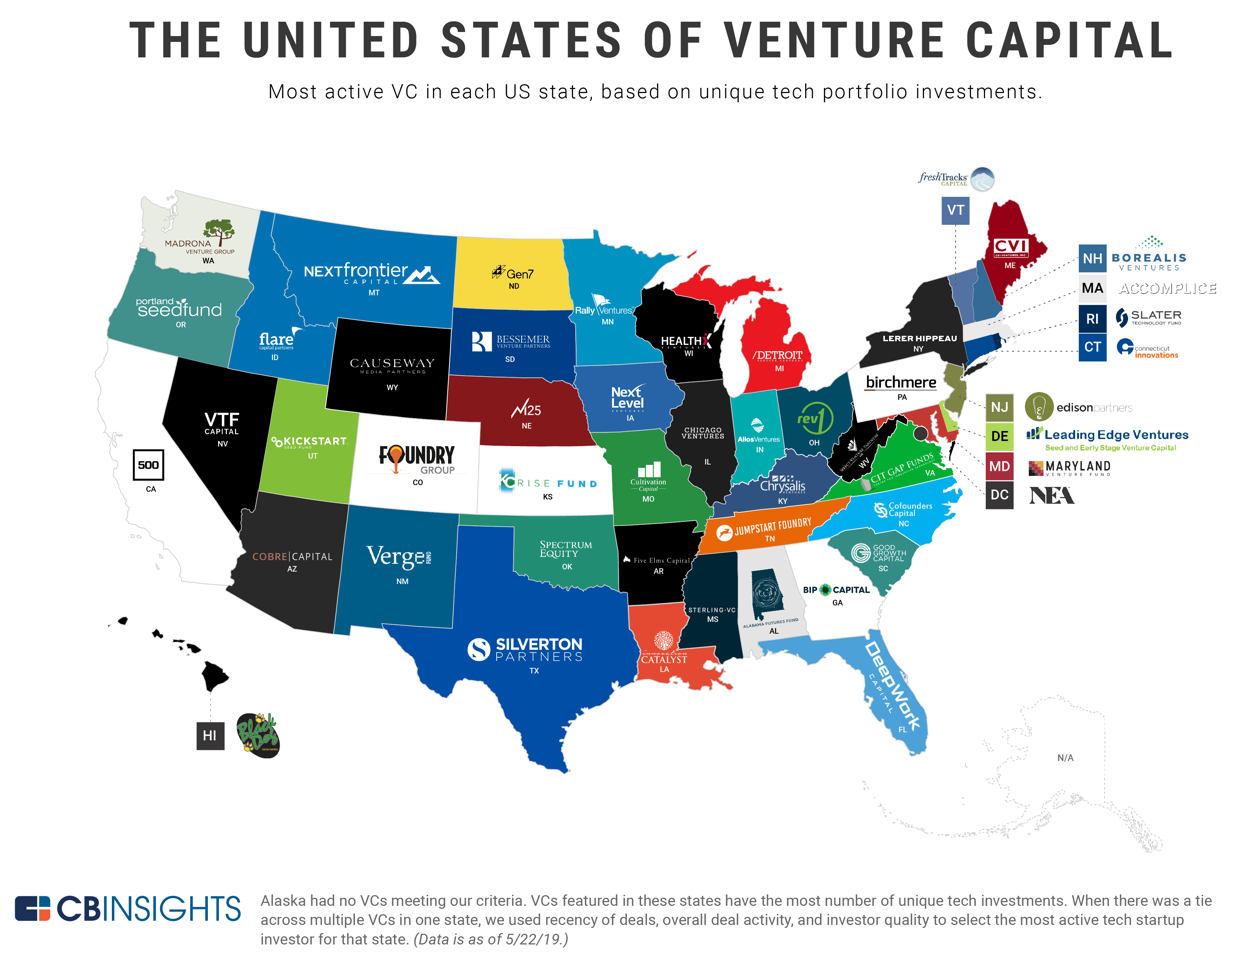 CB Insights, 2019 - The United States of Venture Capital